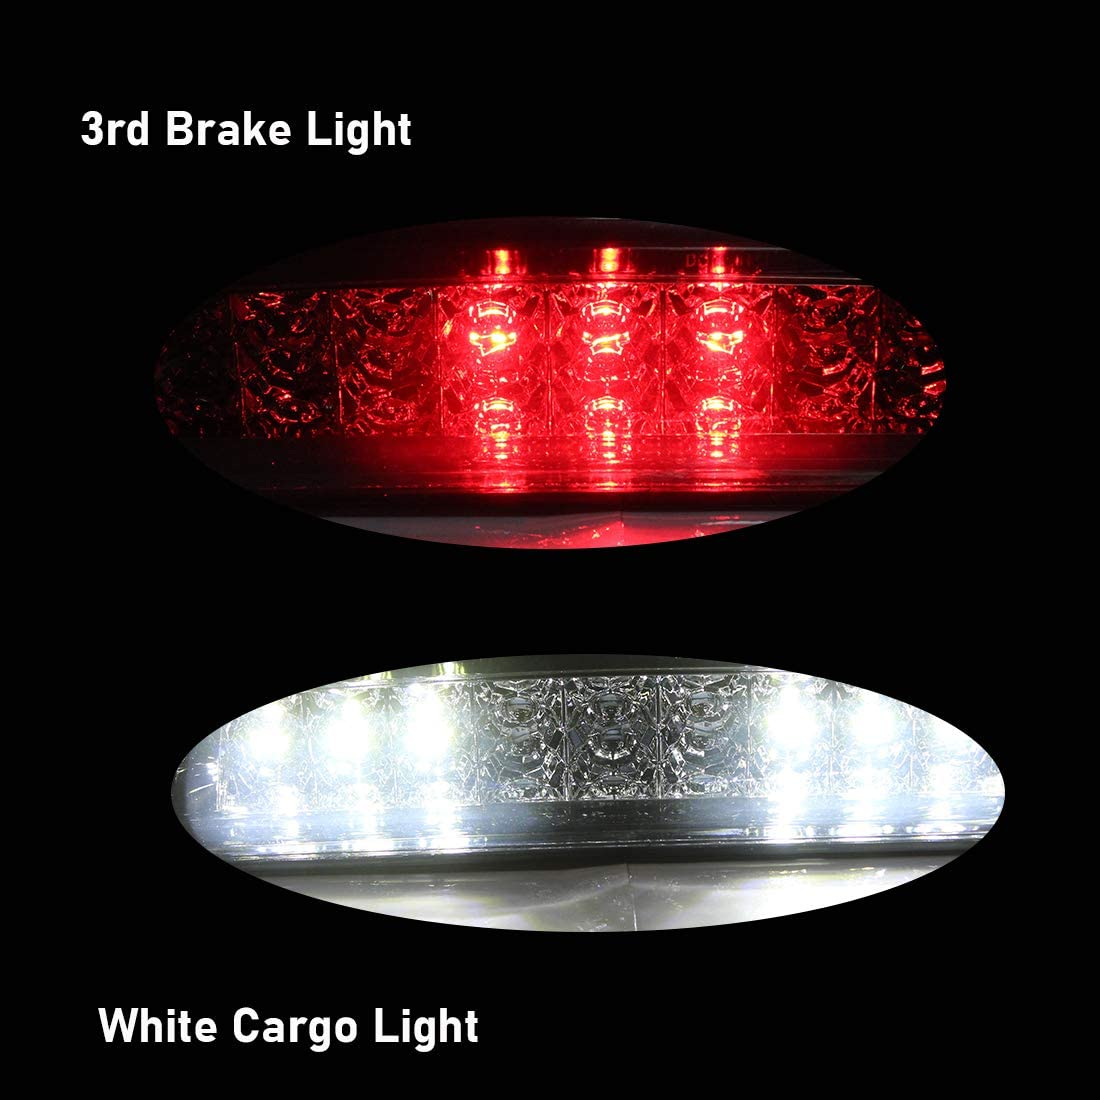 NPAUTO LED Third 3rd Brake Light Cargo Lamp Replacement for 2009-2018 Dodge Ram 1500 2500 3500 High Mount Stop Light Assembly